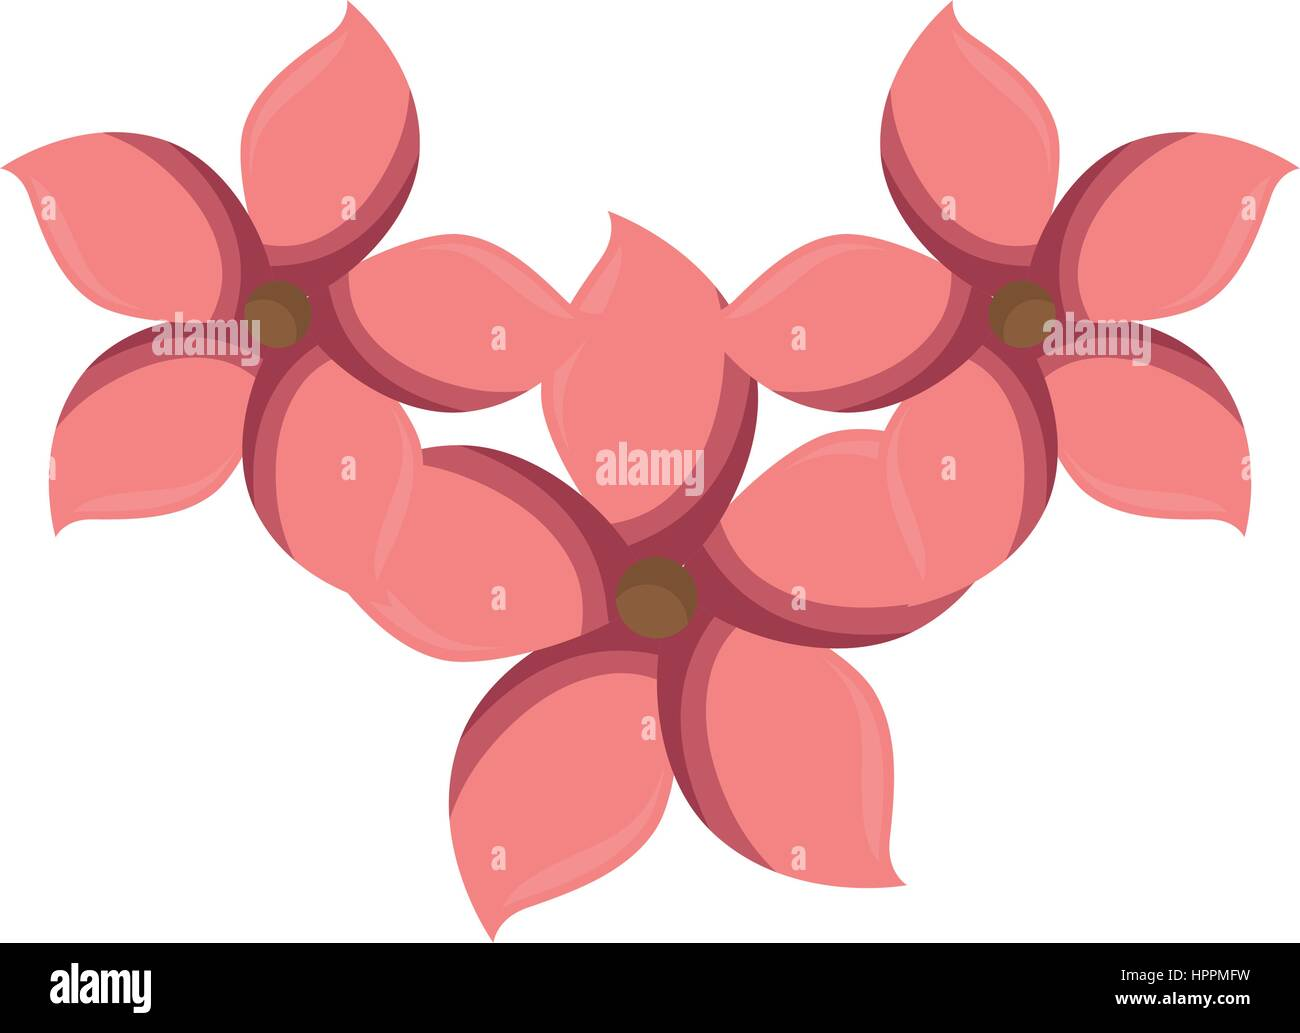 Multicolored Stock Vector Images - Alamy